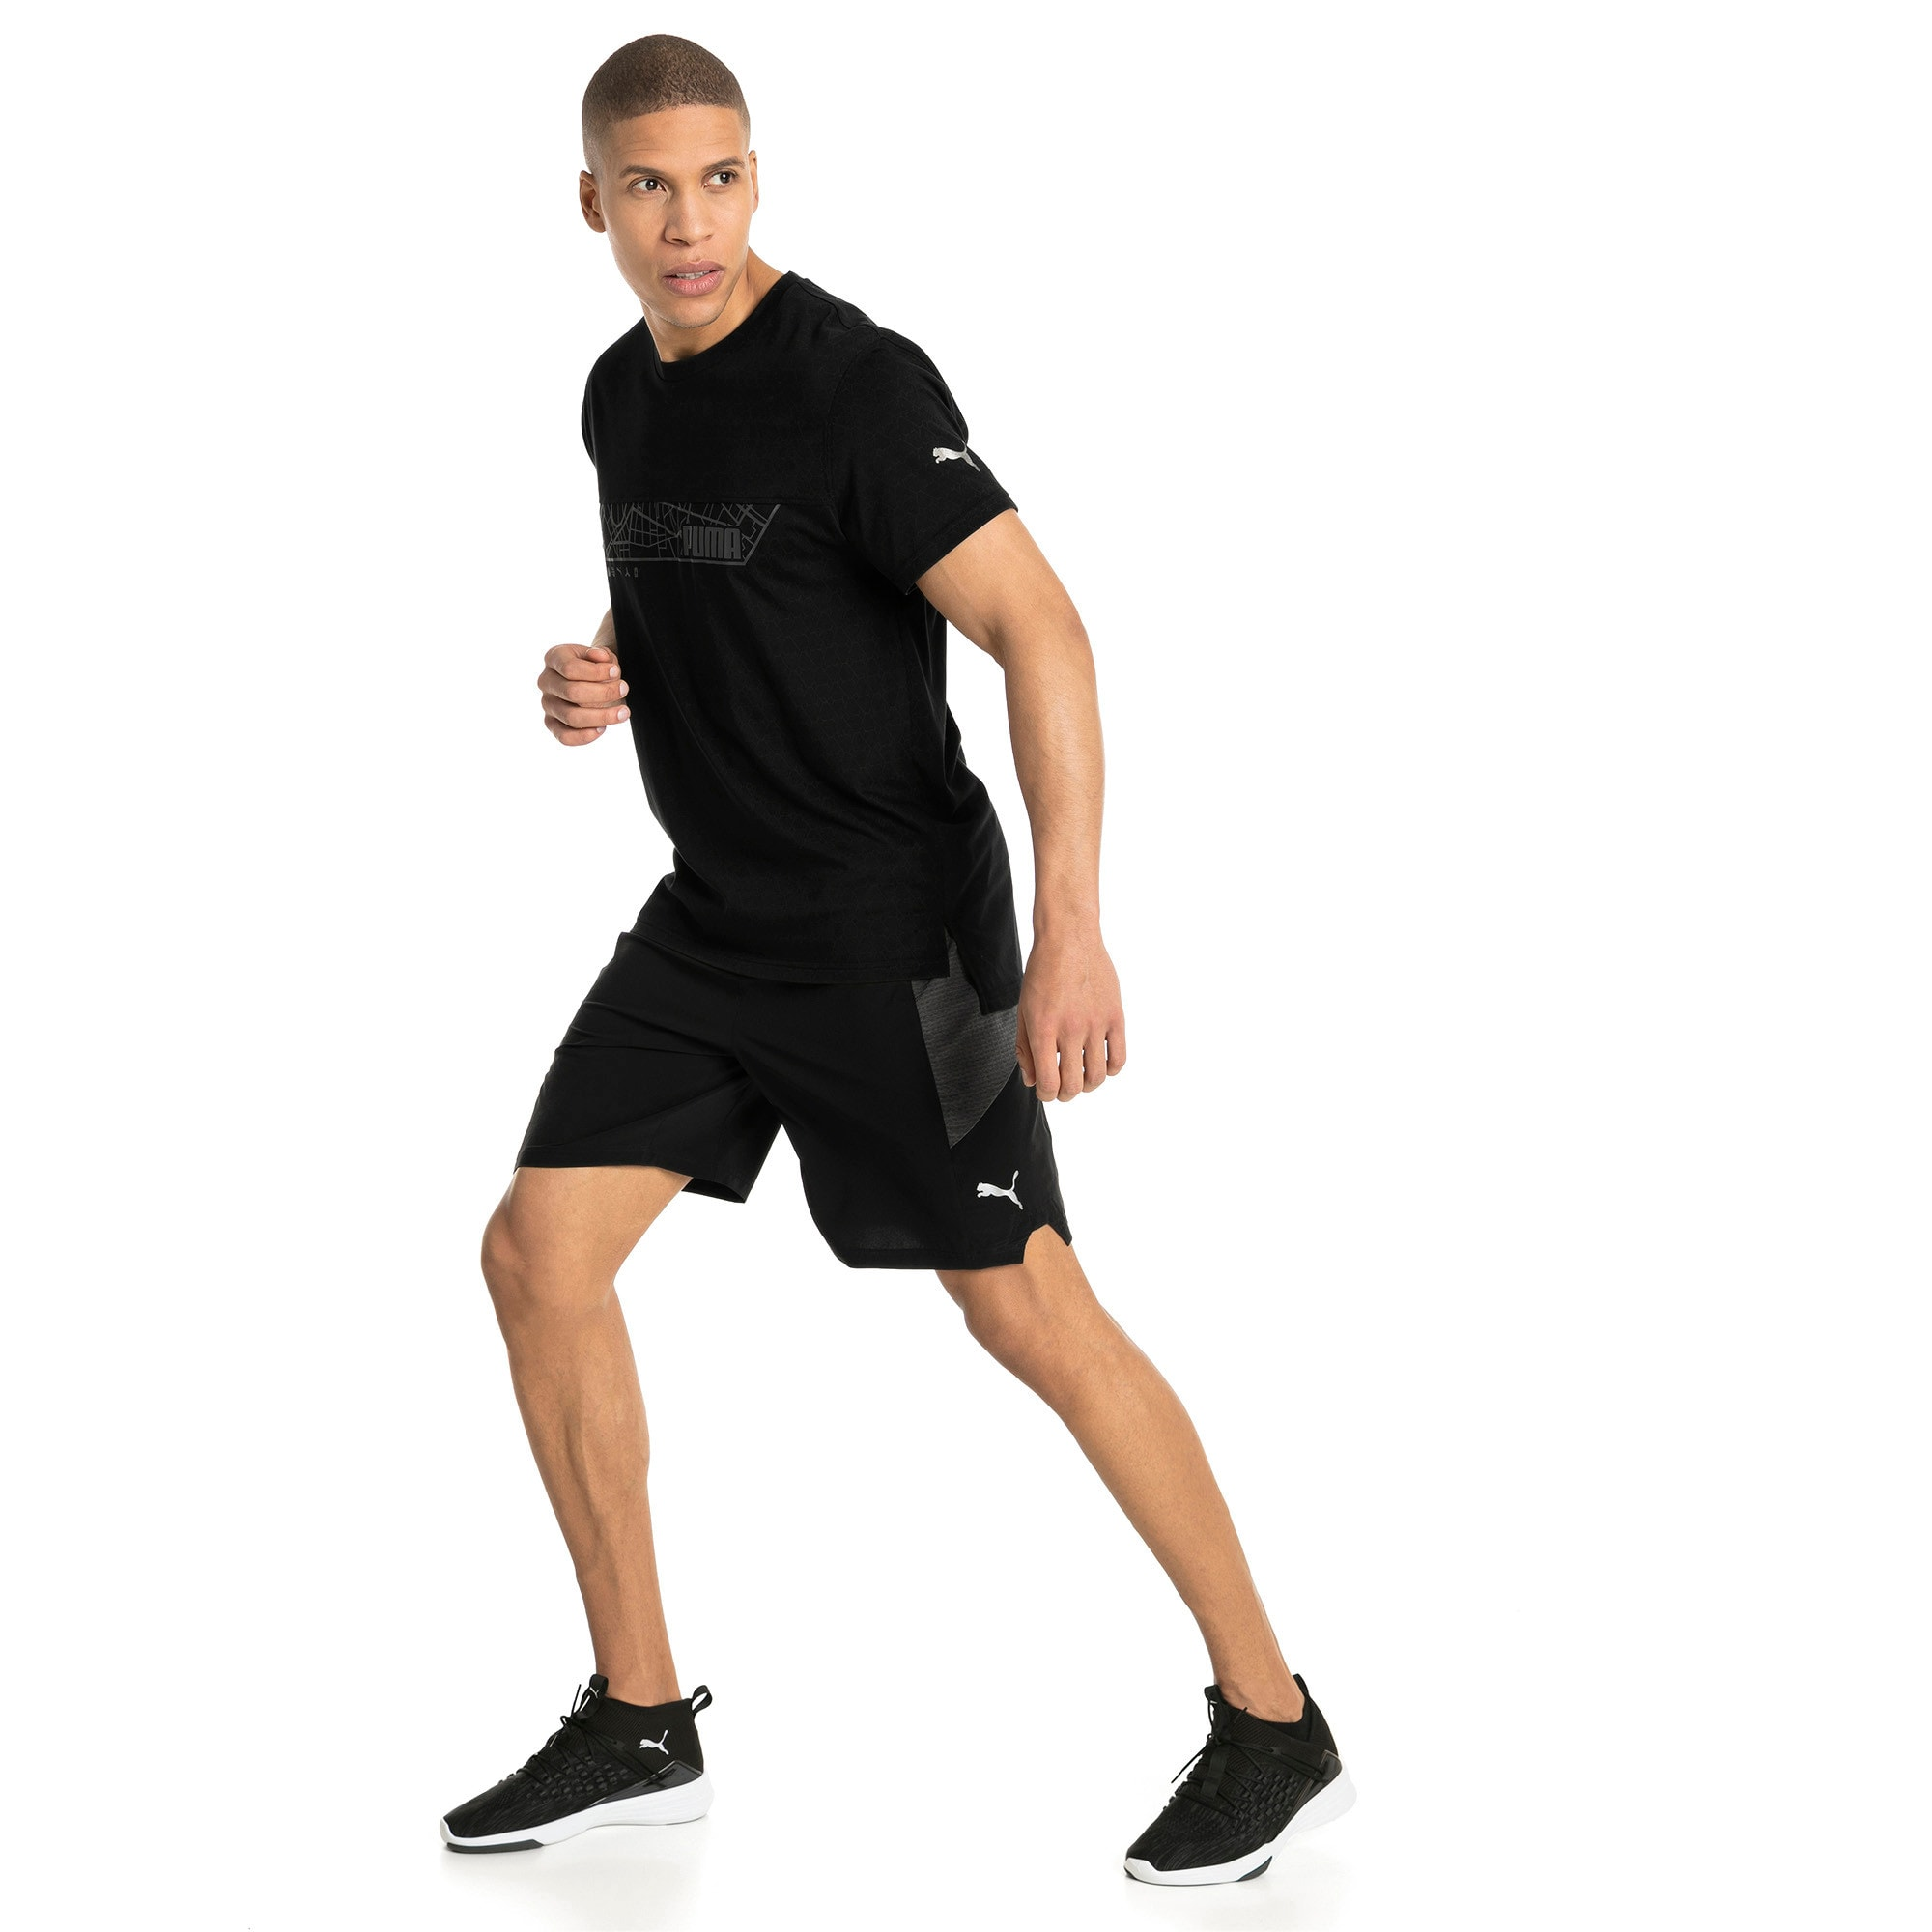 Energy Triblend Graphic Men's Running Tee, Puma Black, large